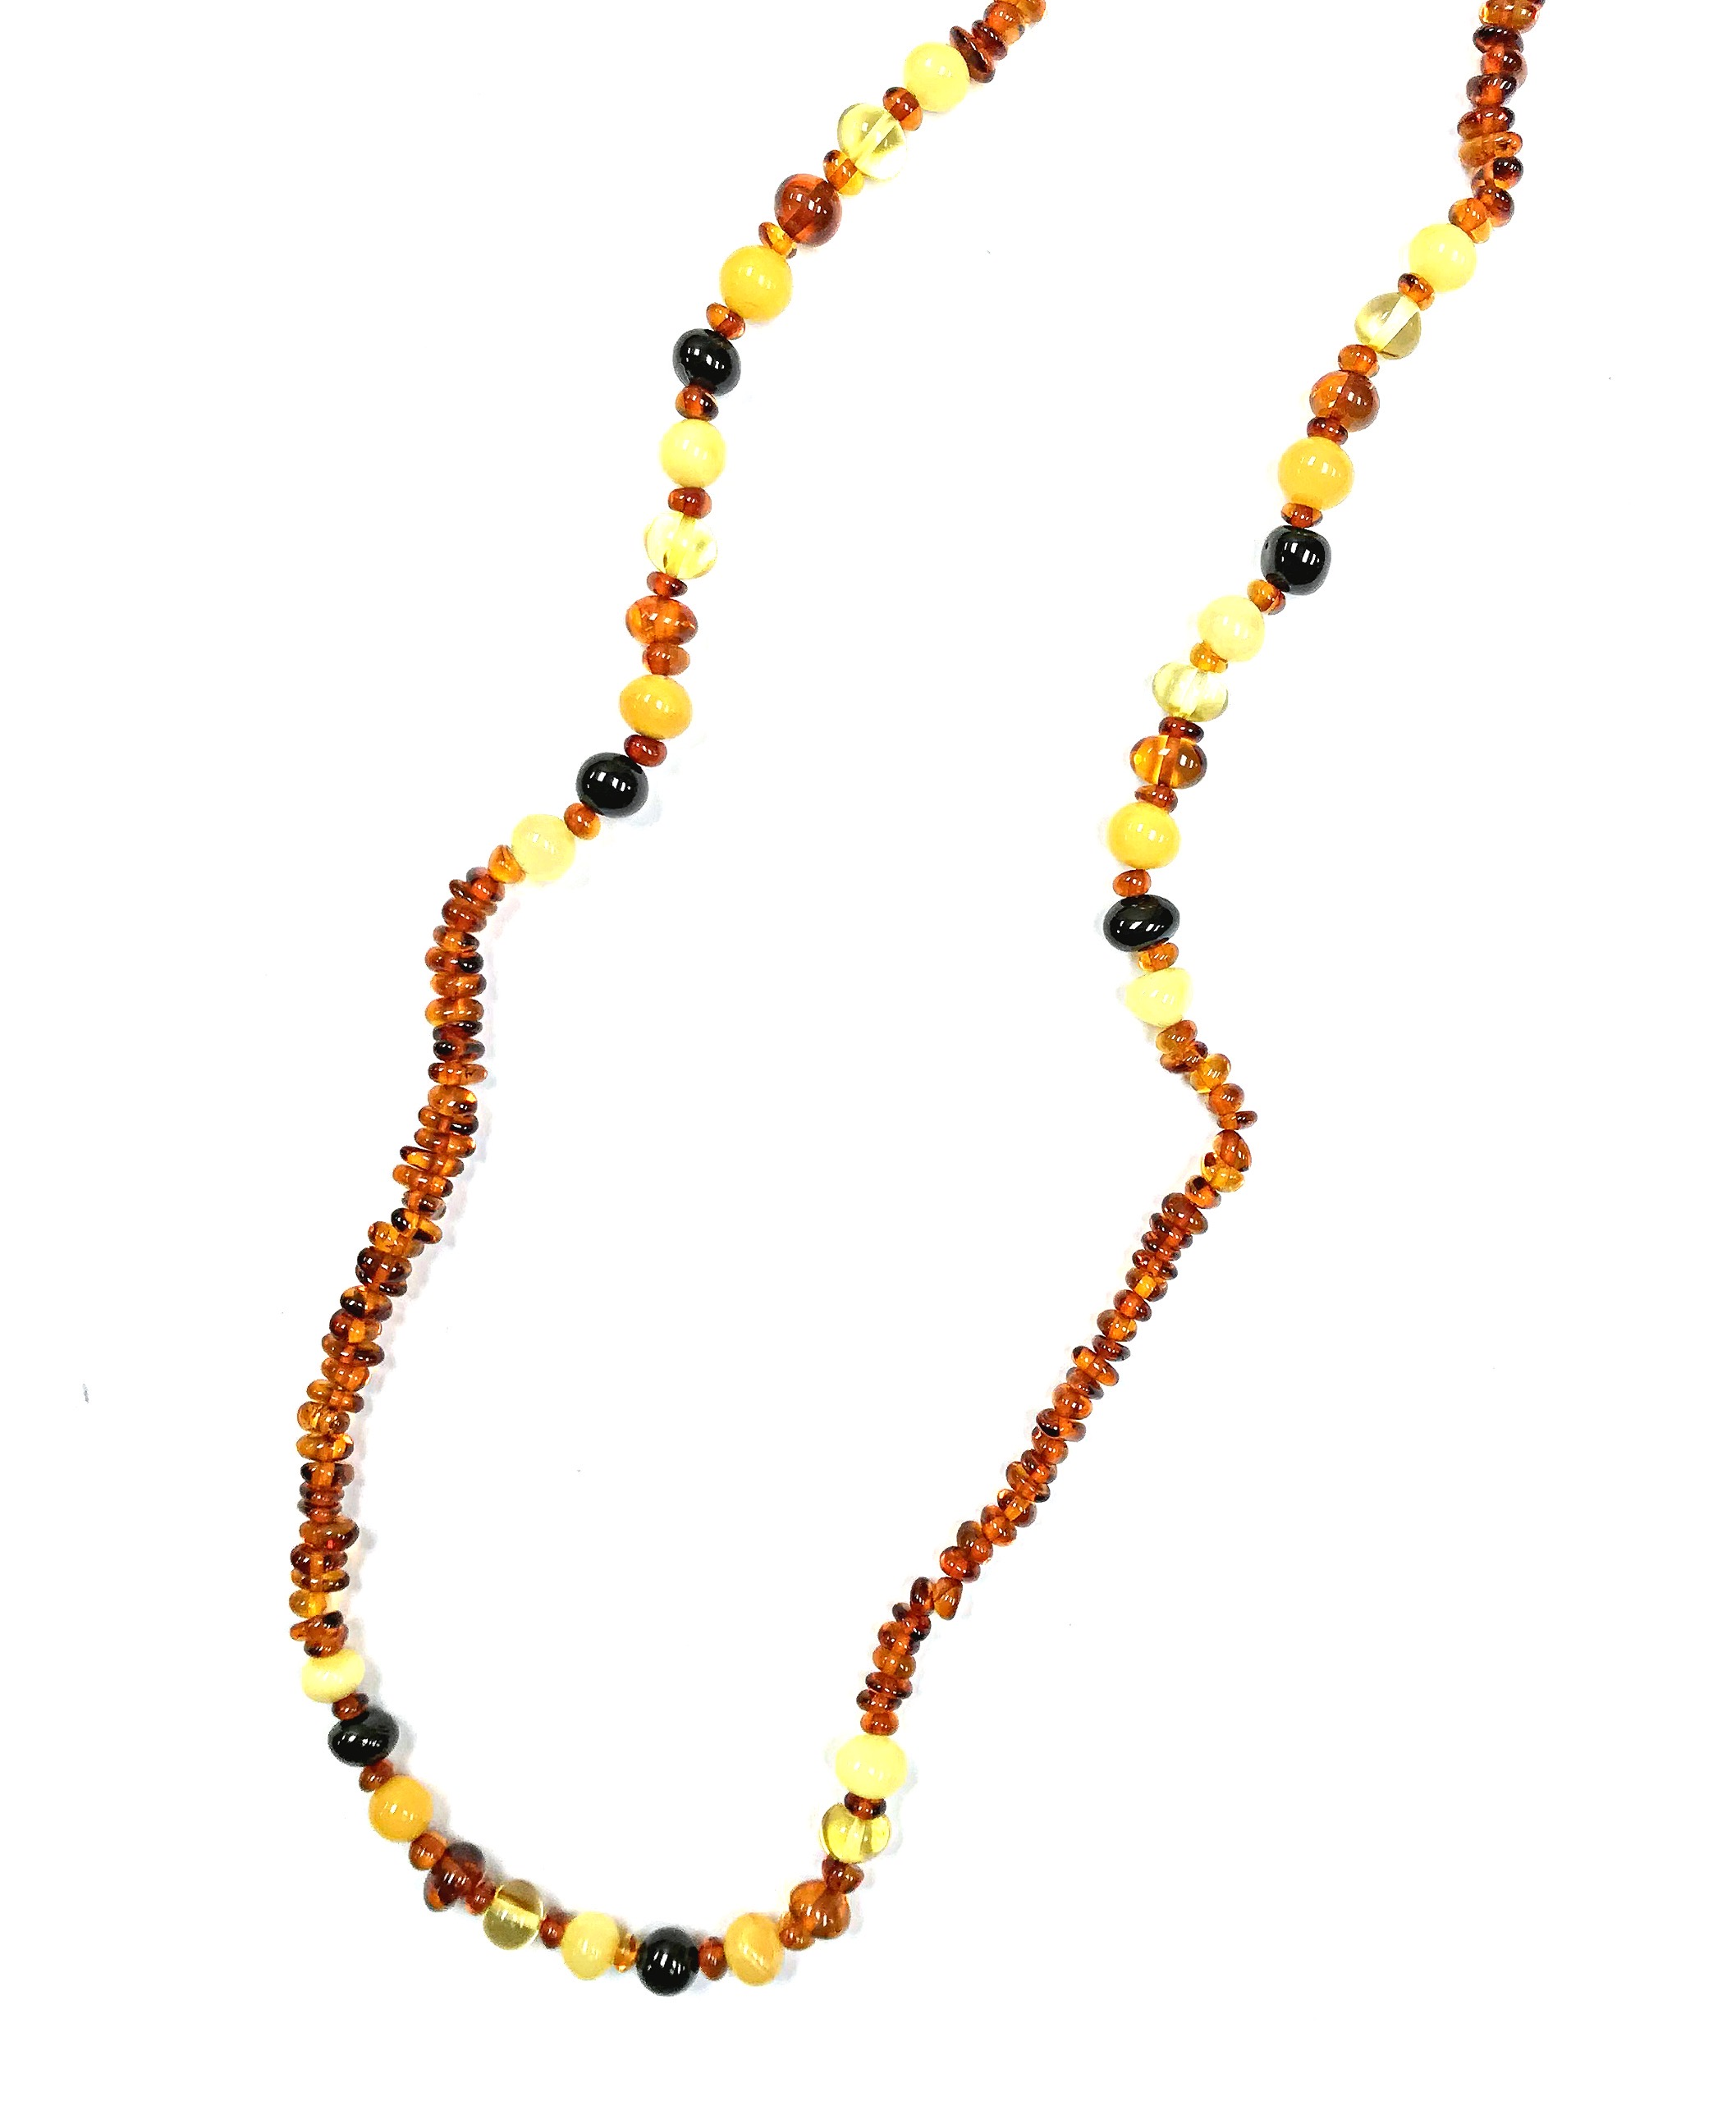 Natural Baltic Amber Necklace. Amberman.